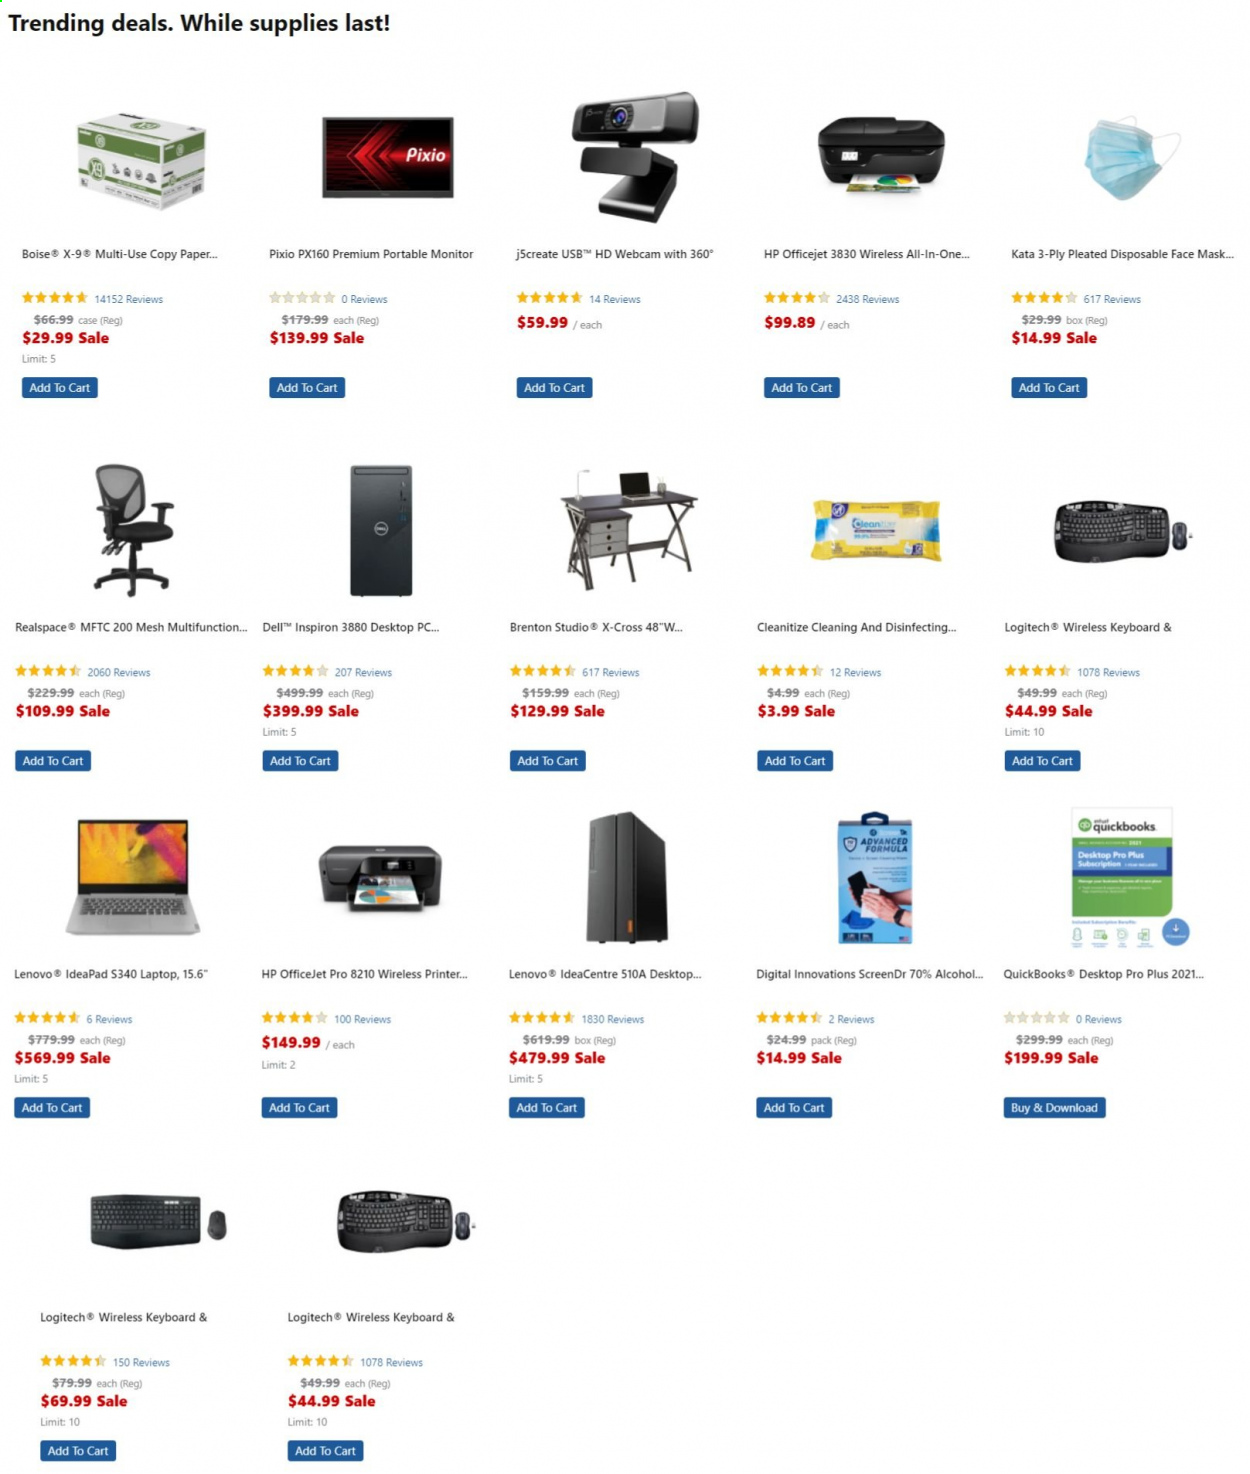 Office DEPOT Flyer - Sales products - box, cart, Dell, laptop, Lenovo, Logitech, mask, monitor, webcam, HP, keyboard, printer, officejet, all-in-one, Inspiron, face mask. Page 1.